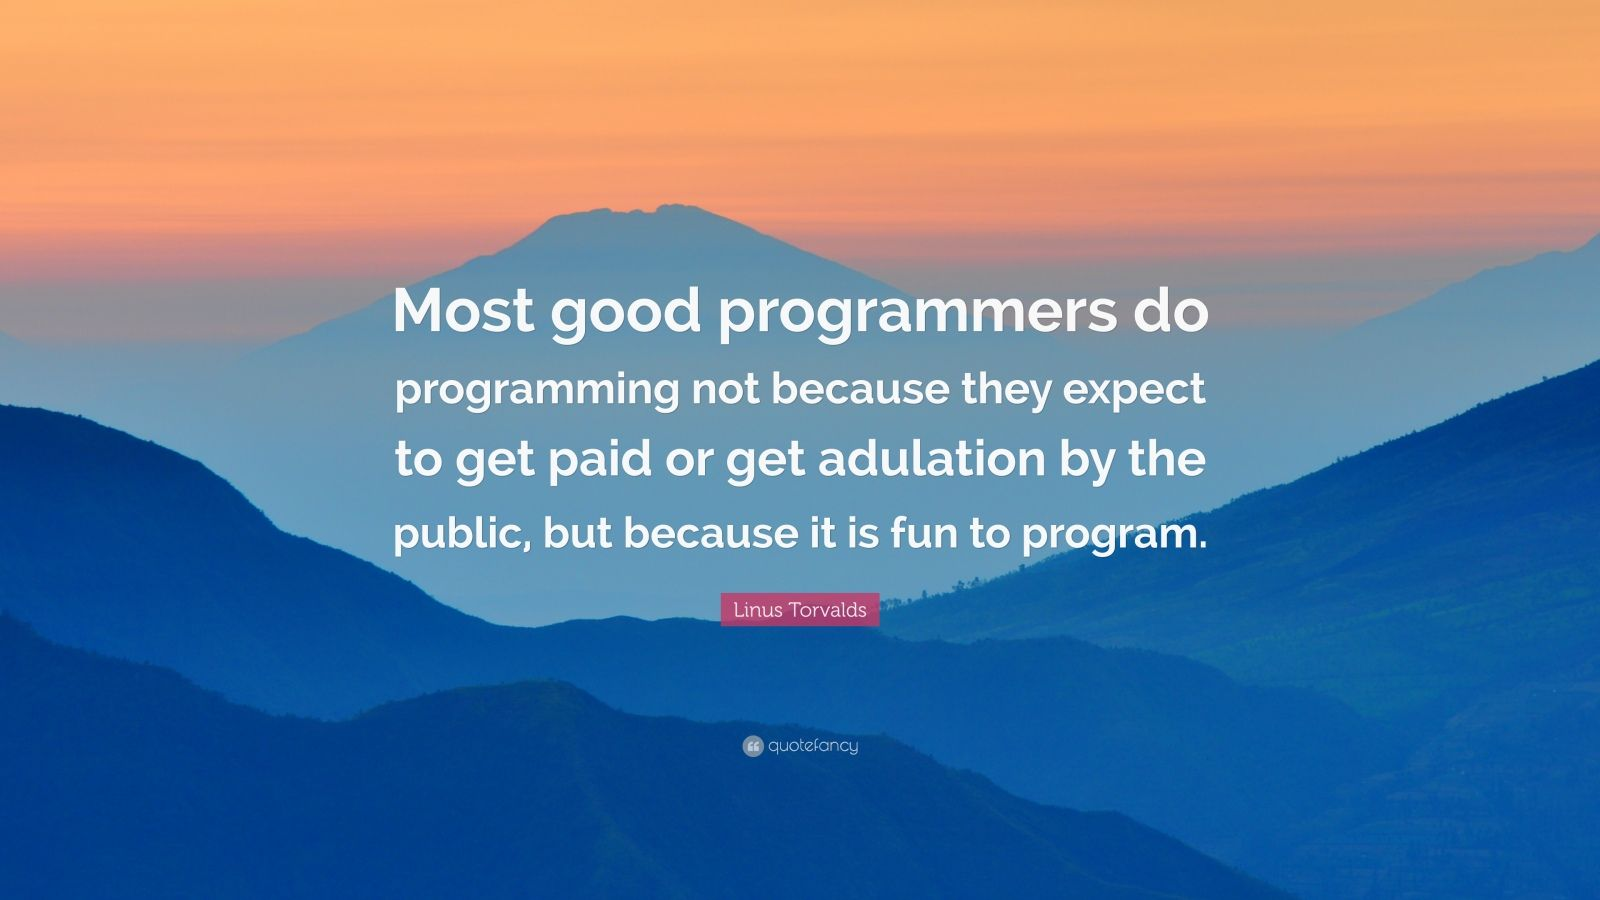 """Linus Torvalds Quote: """"Most good programmers do programming not because they expect to get paid or get adulation by the public, but because it is fun to program."""""""